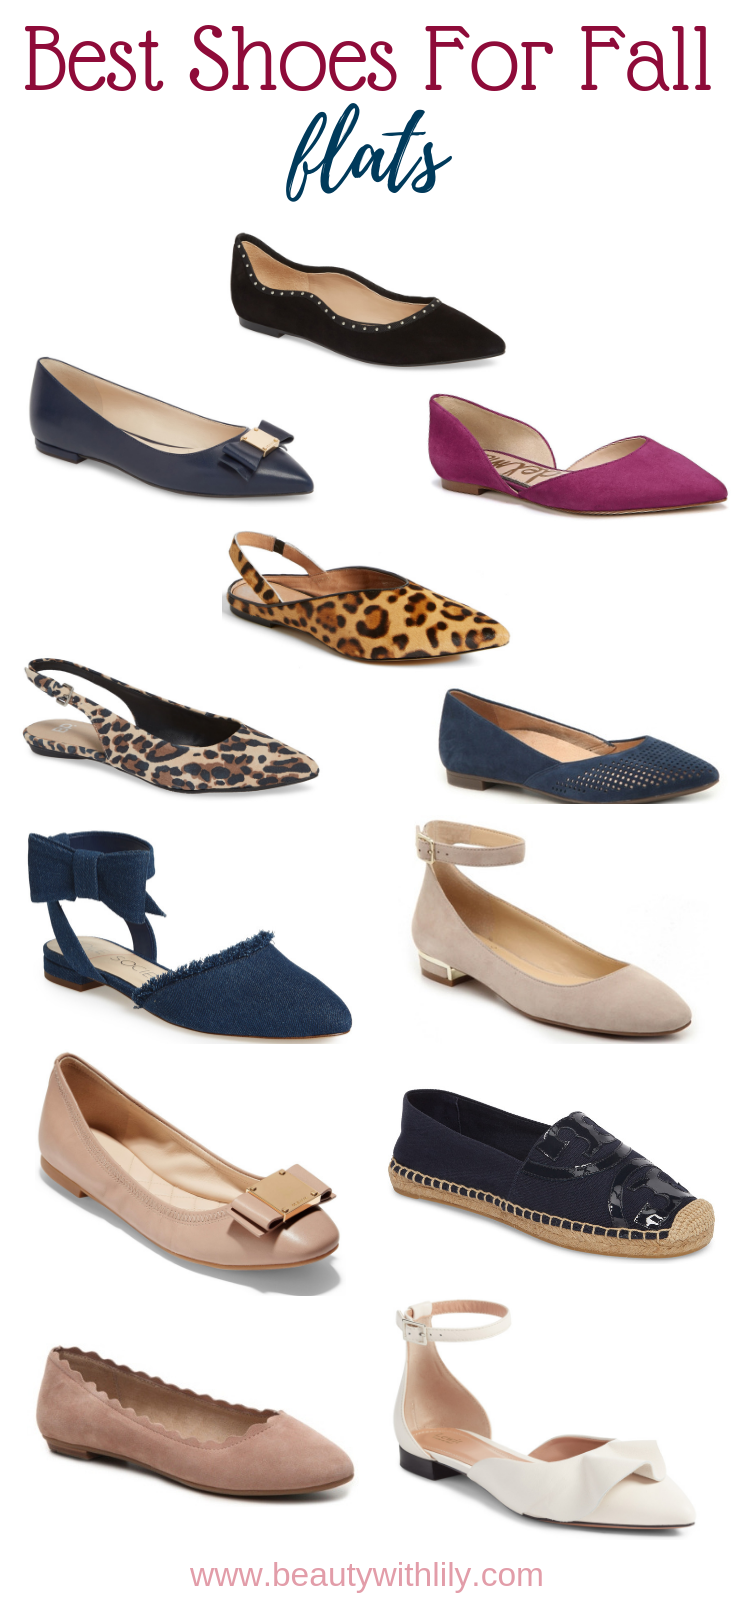 Best Shoes For Fall // Best Flats For Fall // Best Flats // Shoes For Fall // Comfortable Shoes // Cute Flats | Beauty With Lily